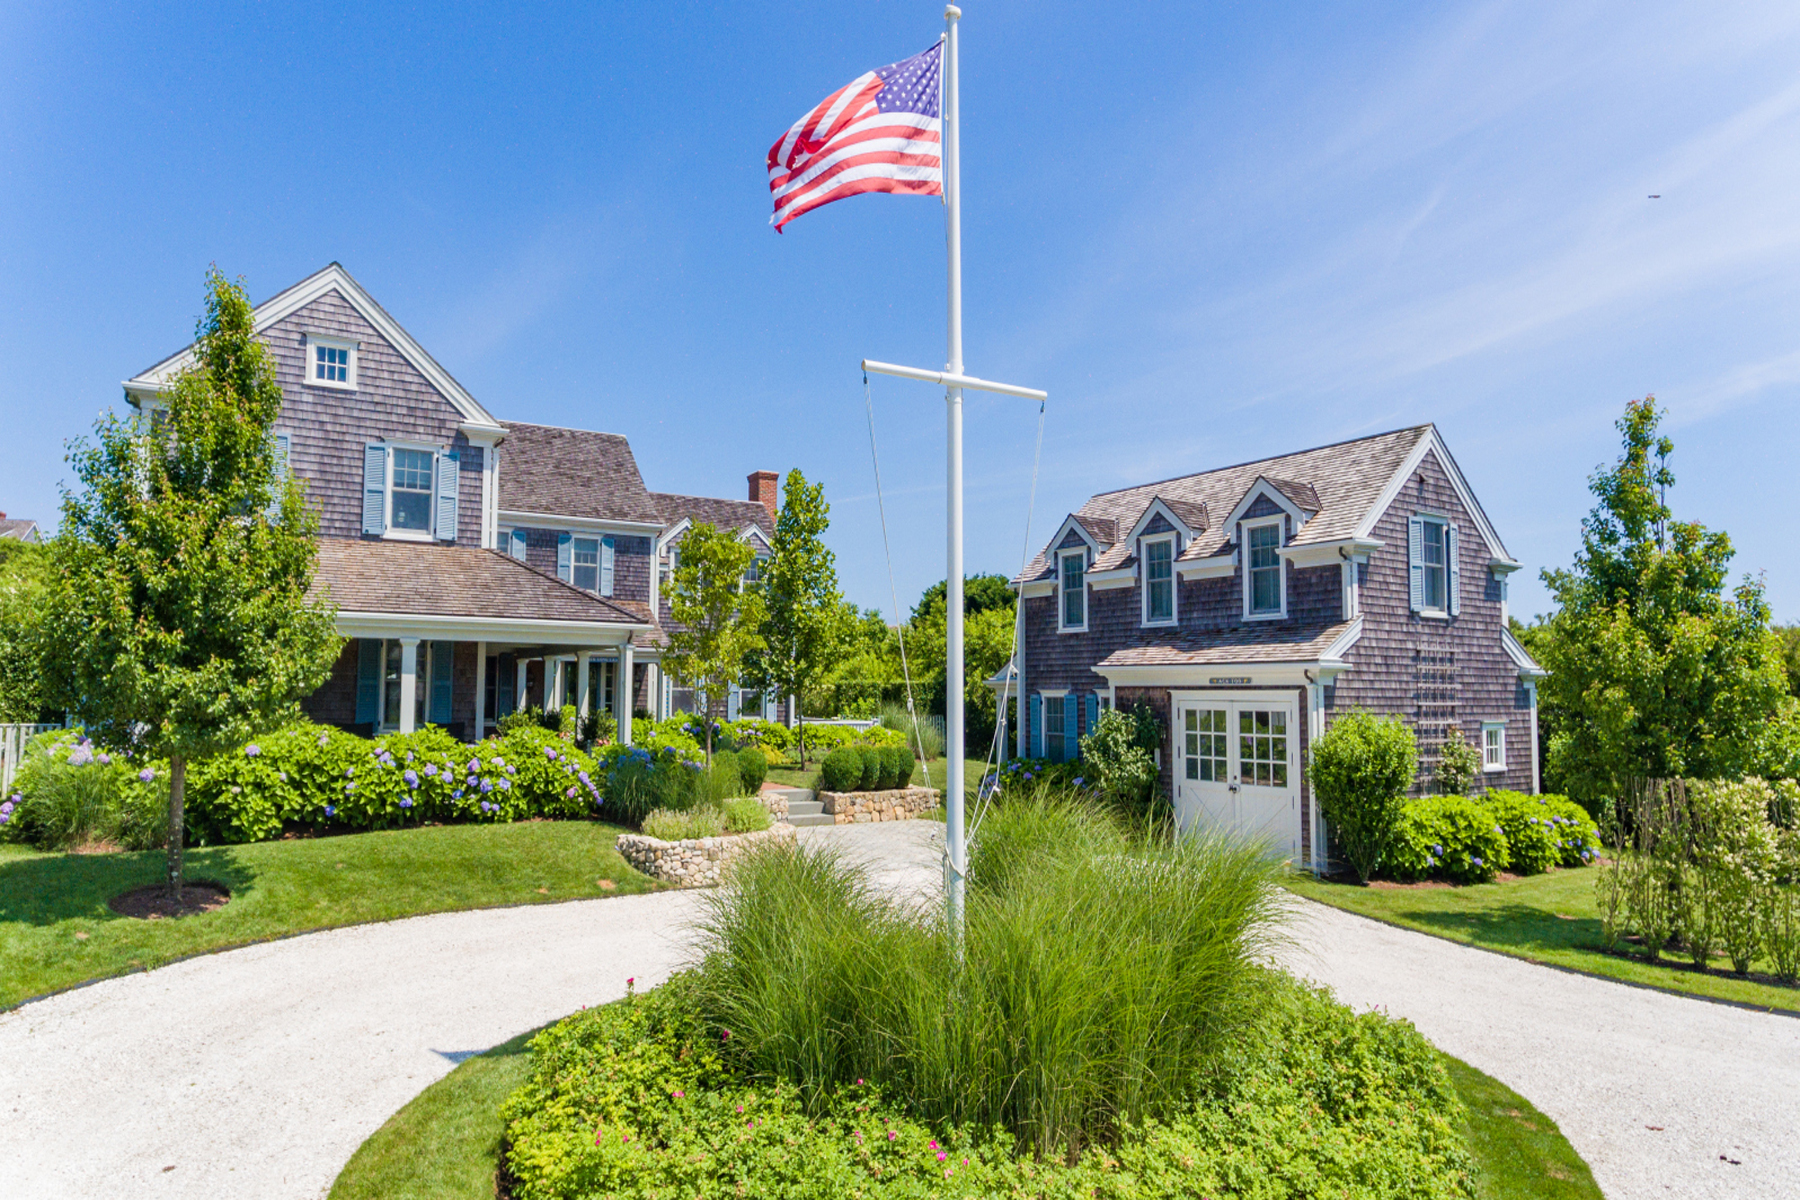 Single Family Home for Active at Private Cliff Road Estate 4 John Adams Lane (97 Cliff Road) Nantucket, Massachusetts 02554 United States